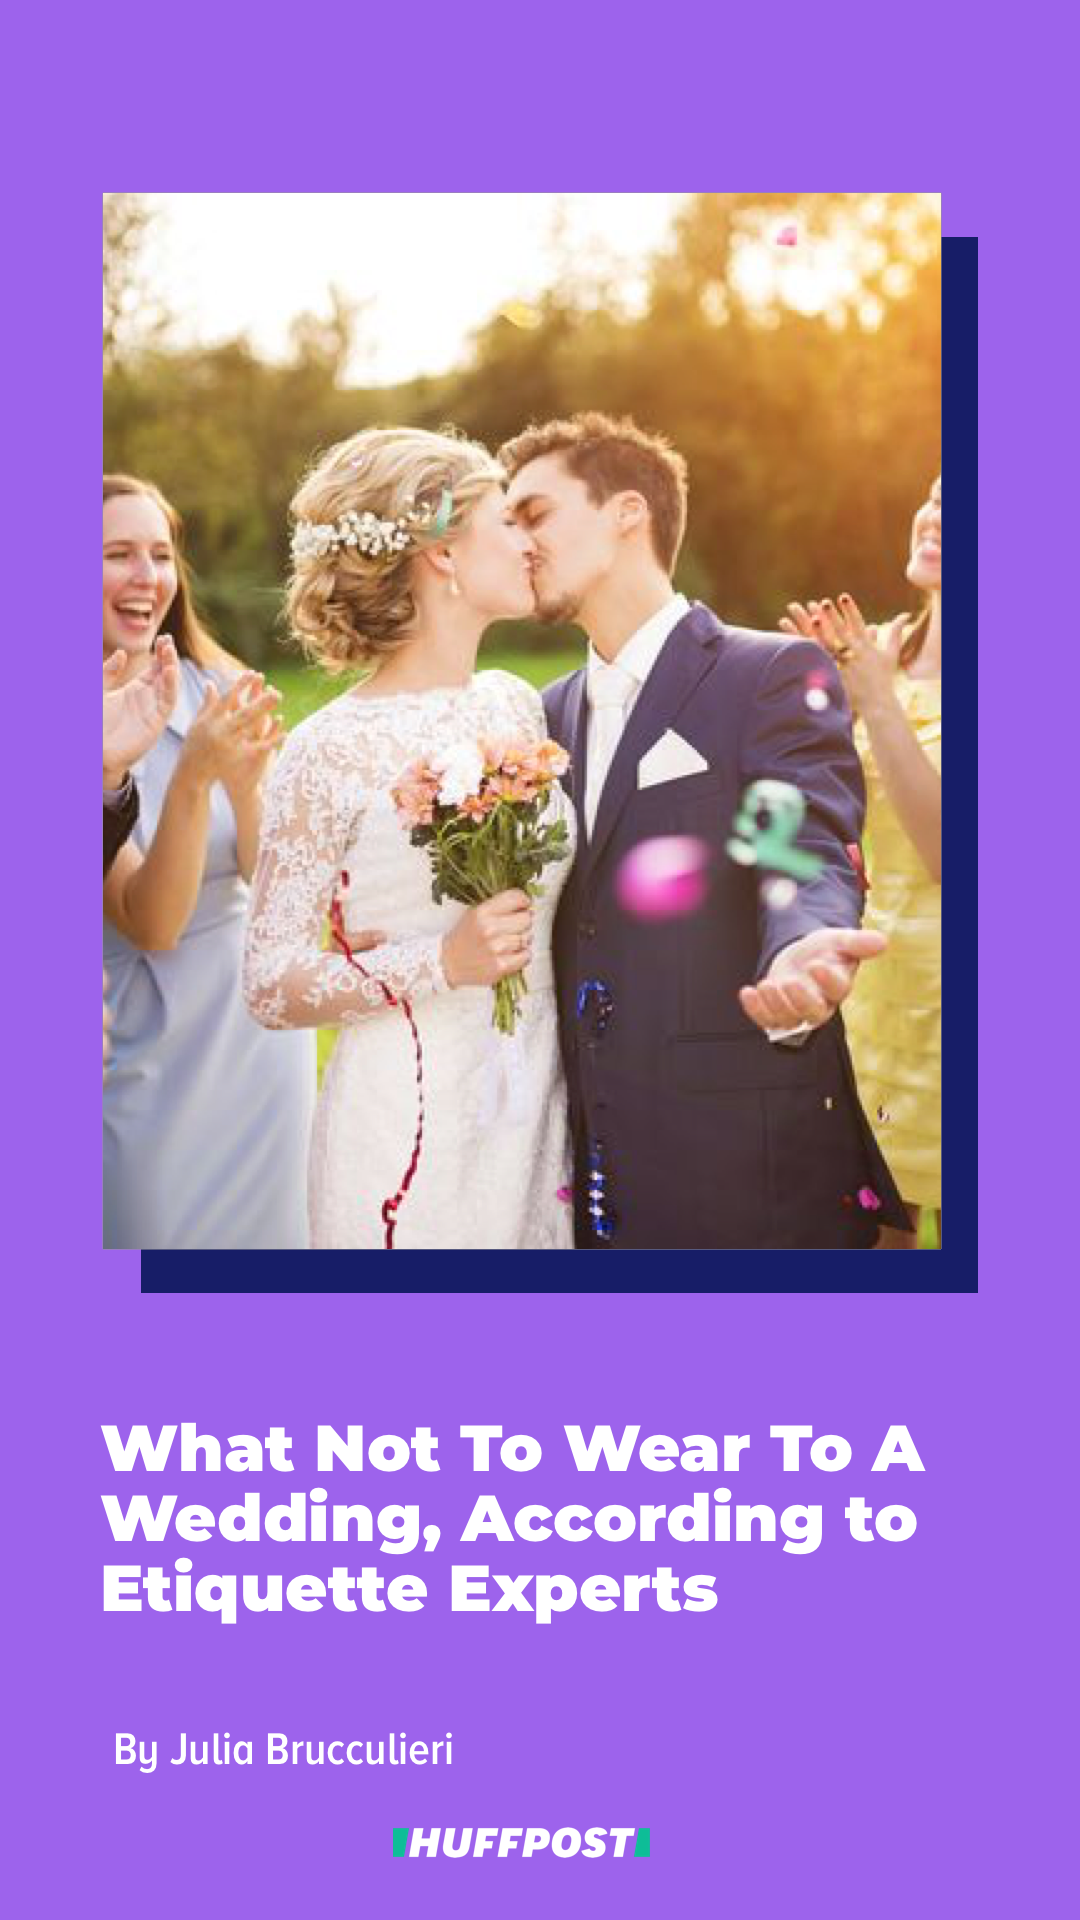 What Not To Wear To A Wedding According To Etiquette Experts In 2020 What To Wear To A Wedding Wedding How To Wear